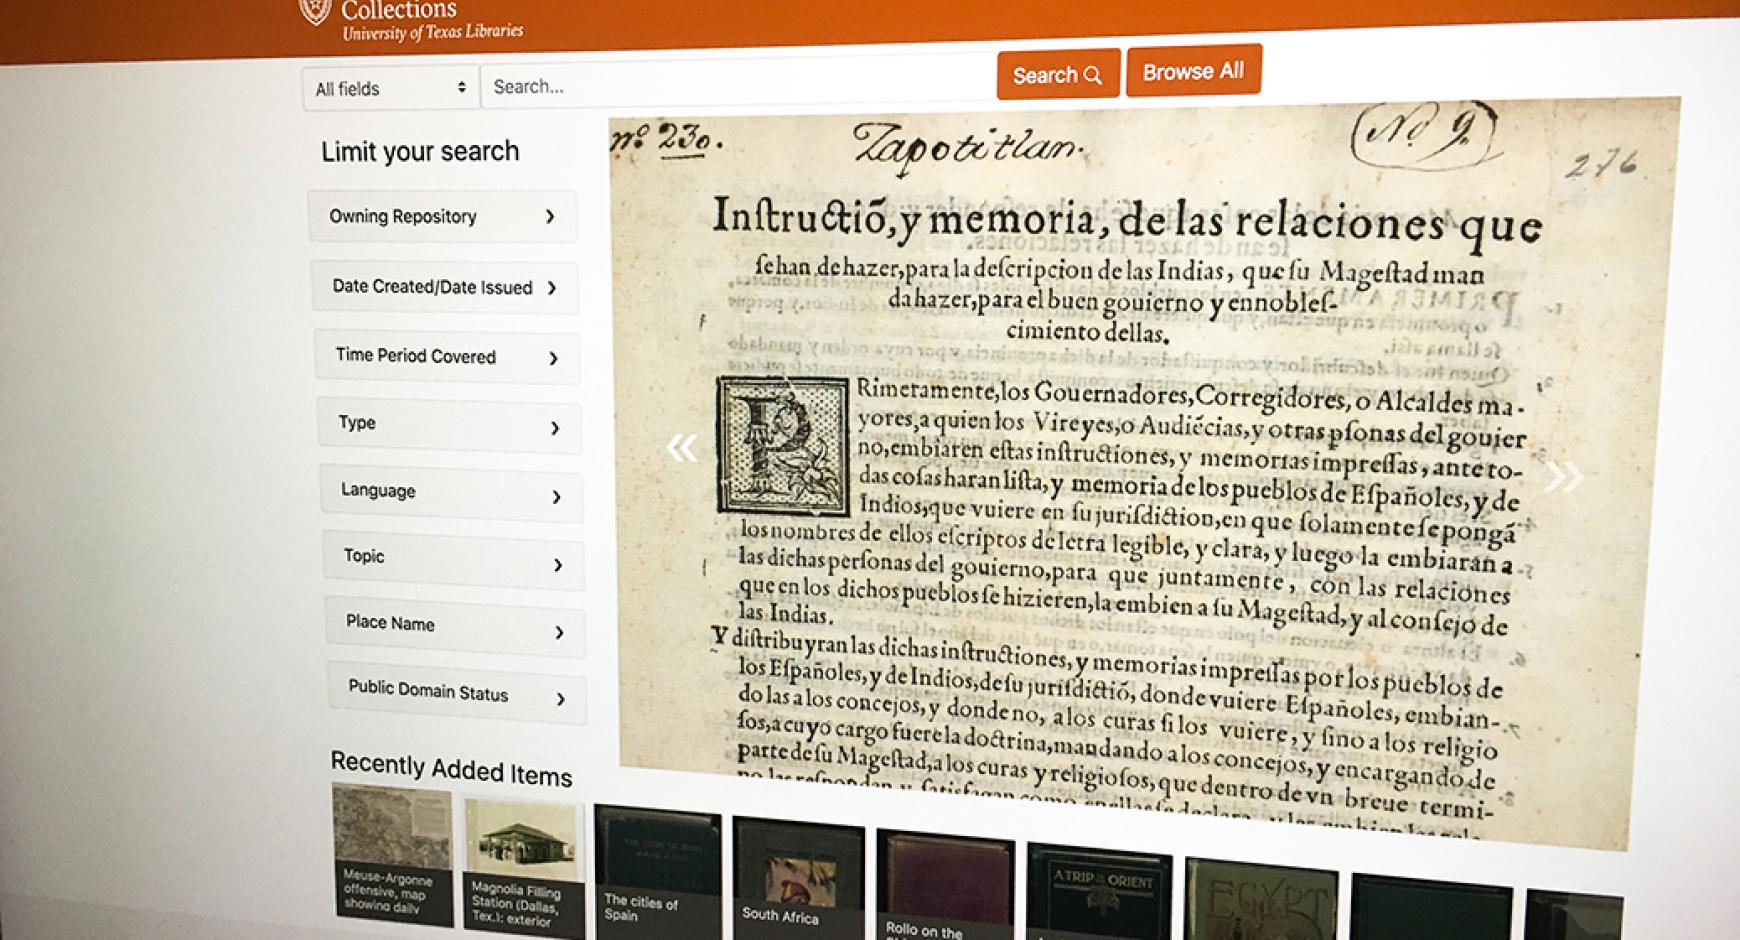 image of website for university of texas libraries digital collections